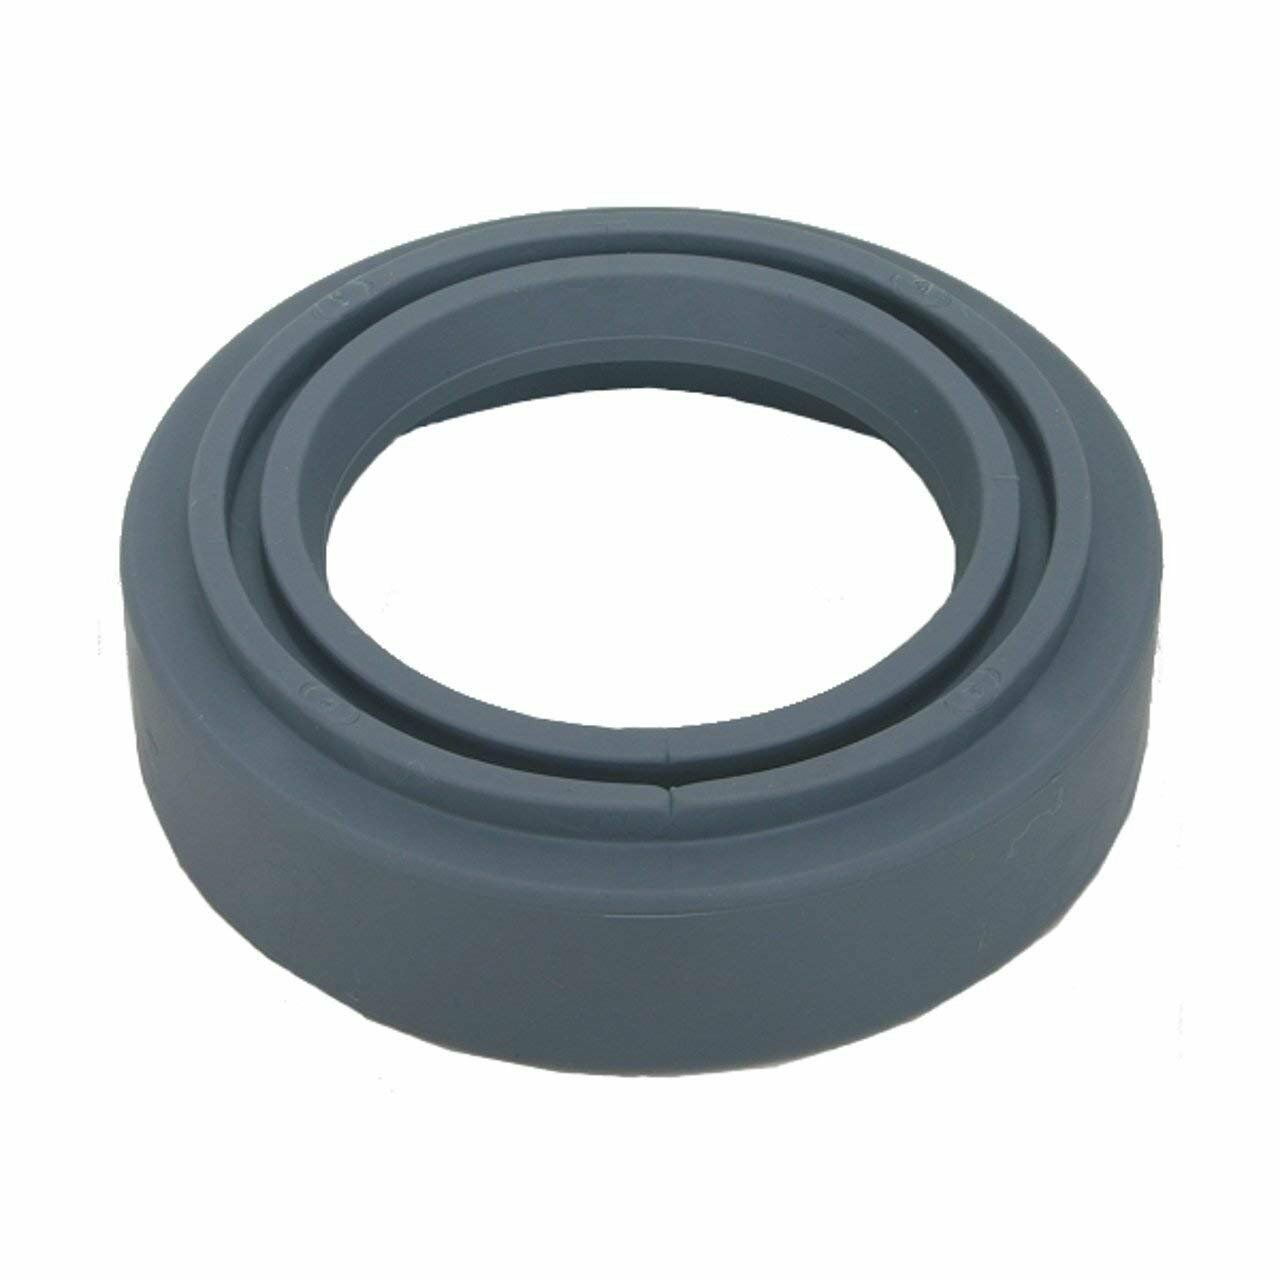 T & S Brass and Bronze Work 007861-45 Pre-rince Faucet Spray Head Ring